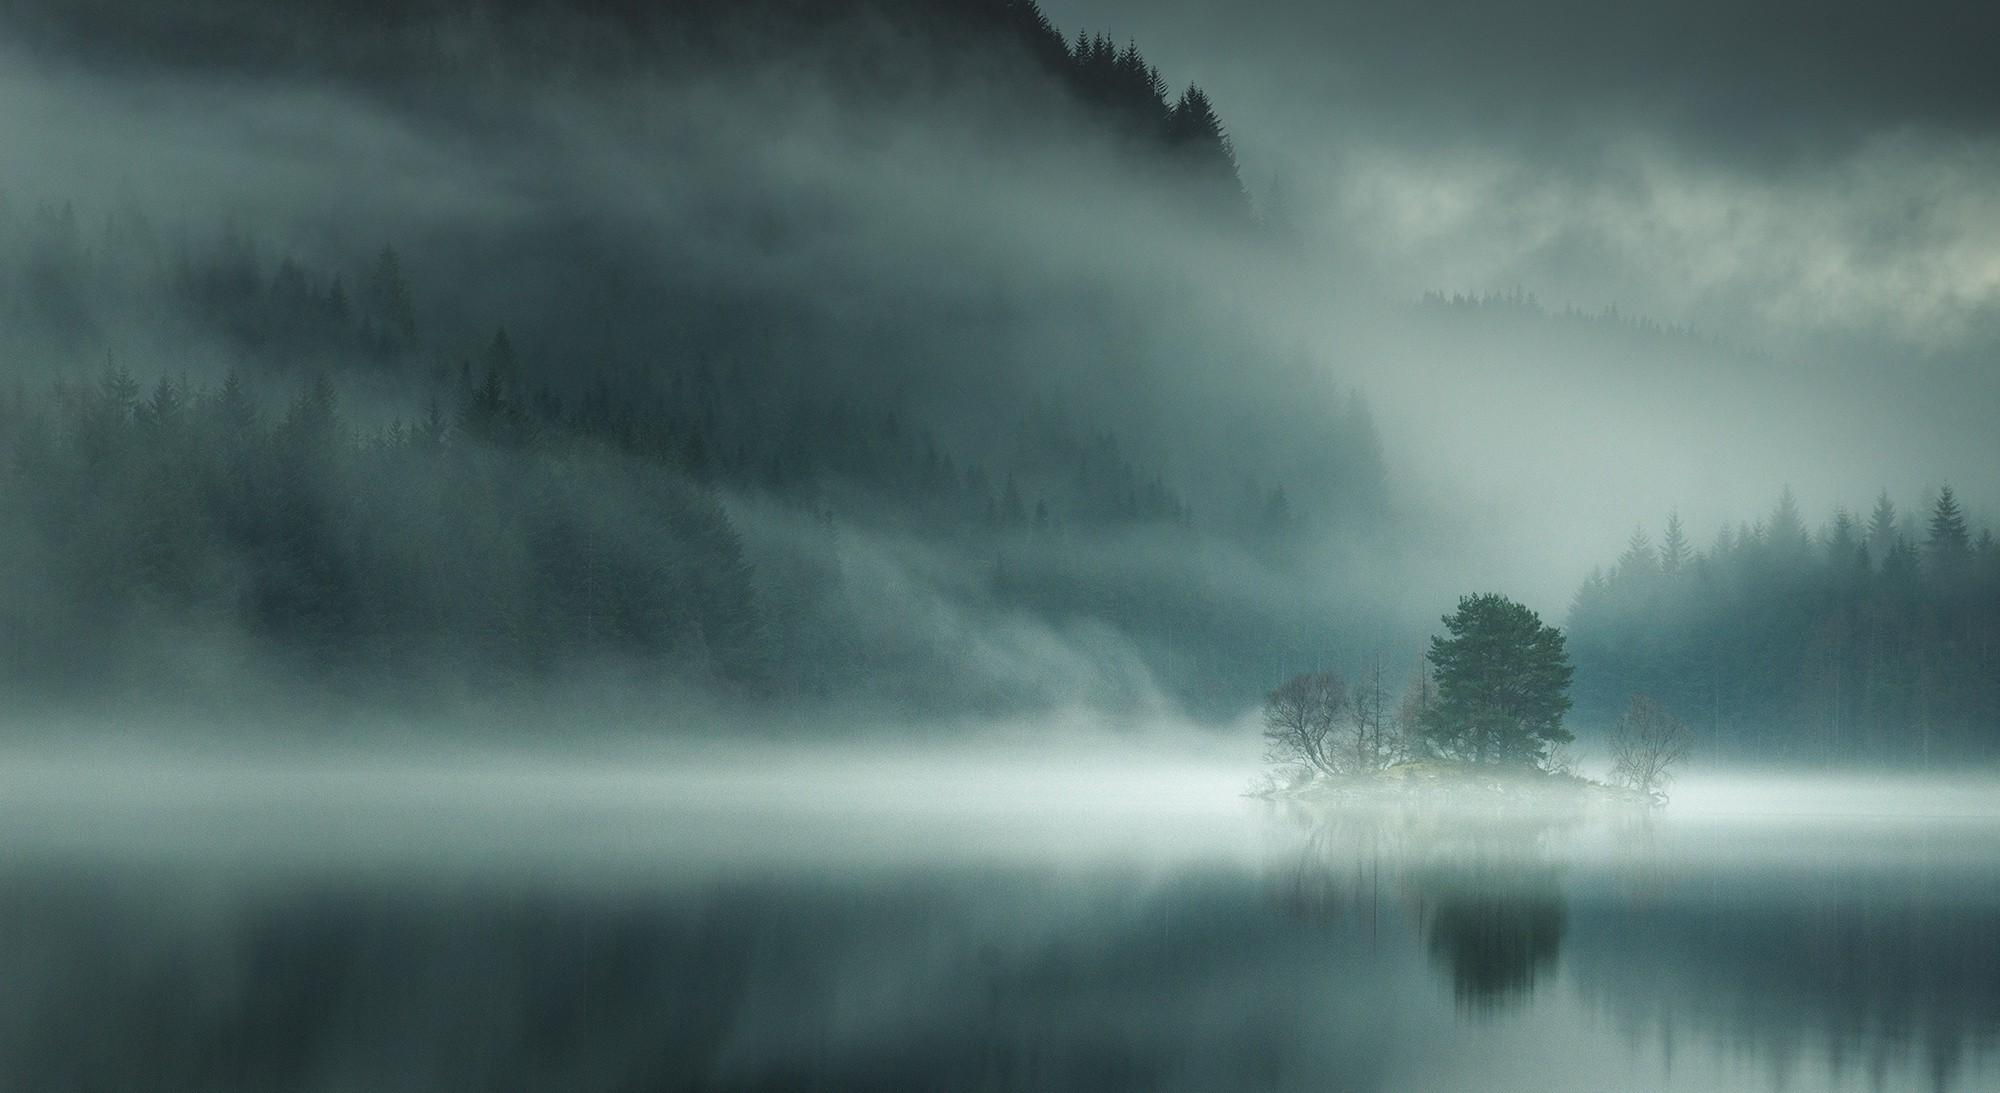 nature, Landscape, Lake, Mist, Mountain, Morning, Forest, Scotland ...